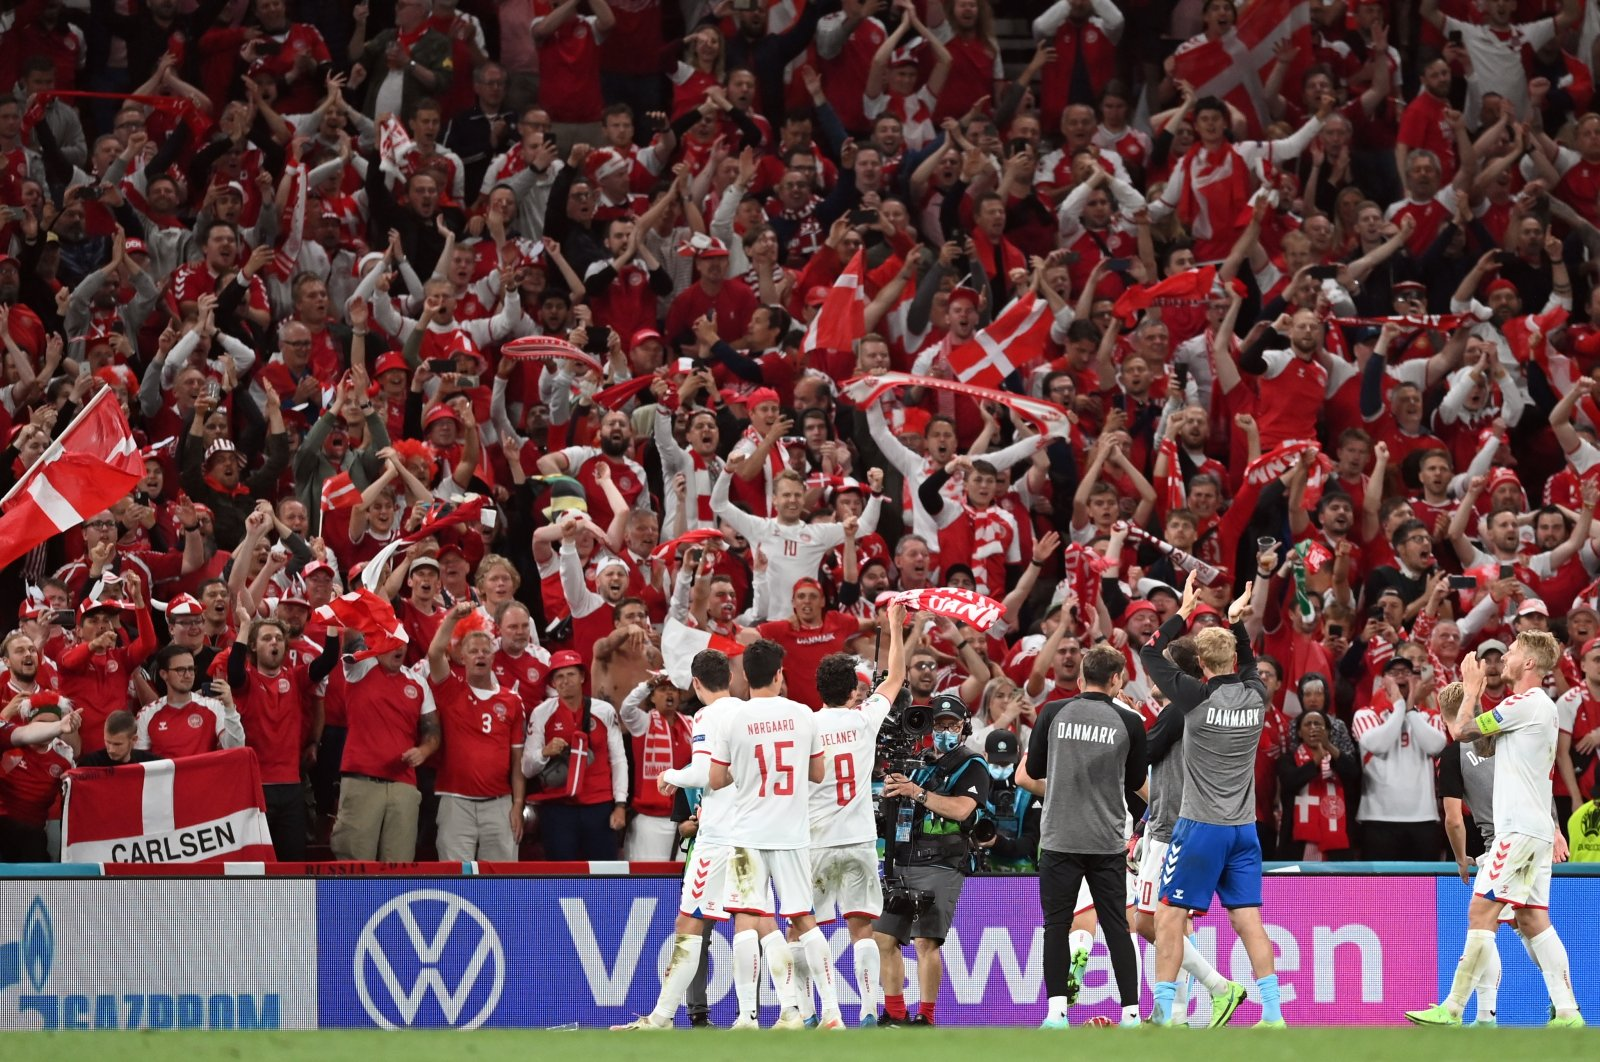 Players of Denmark celebrate with fans after winning the UEFA EURO 2020 group B preliminary round soccer match between Russia and Denmark in Copenhagen, Denmark, June 21, 2021. (EPA Photo)